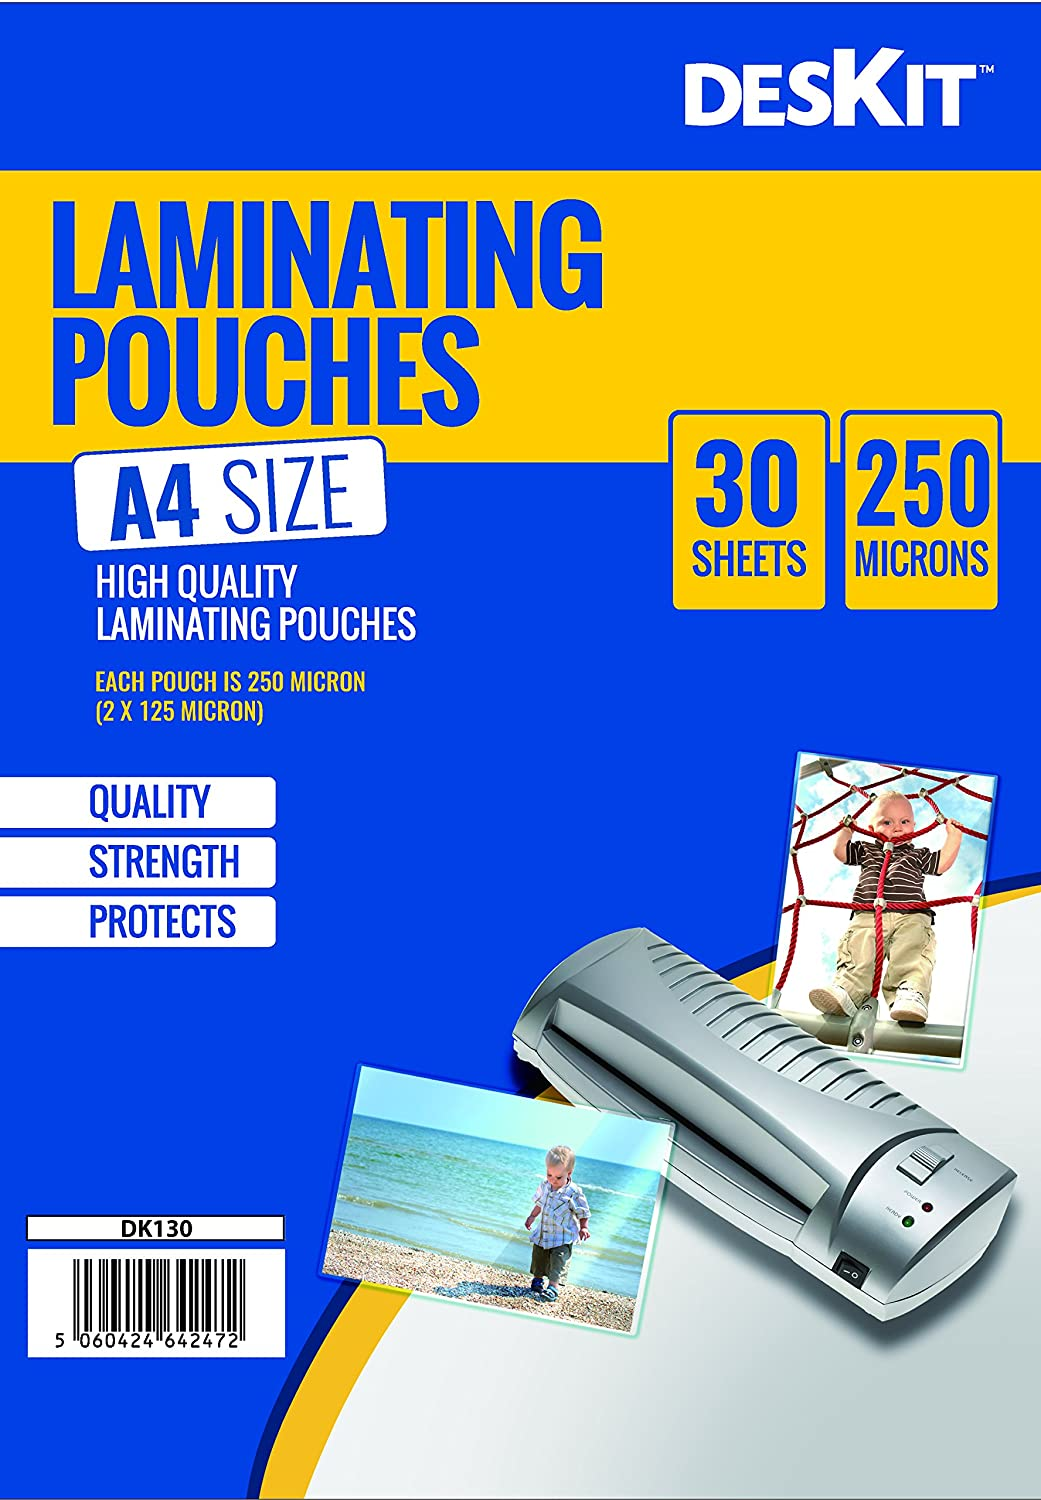 DESKIT 30 A4 Size Laminating Pouches 250 Micron Extra Strong Quality - Ideal for Photos & Heavy Duty Or Frequently Handled Documents. ALLKIT